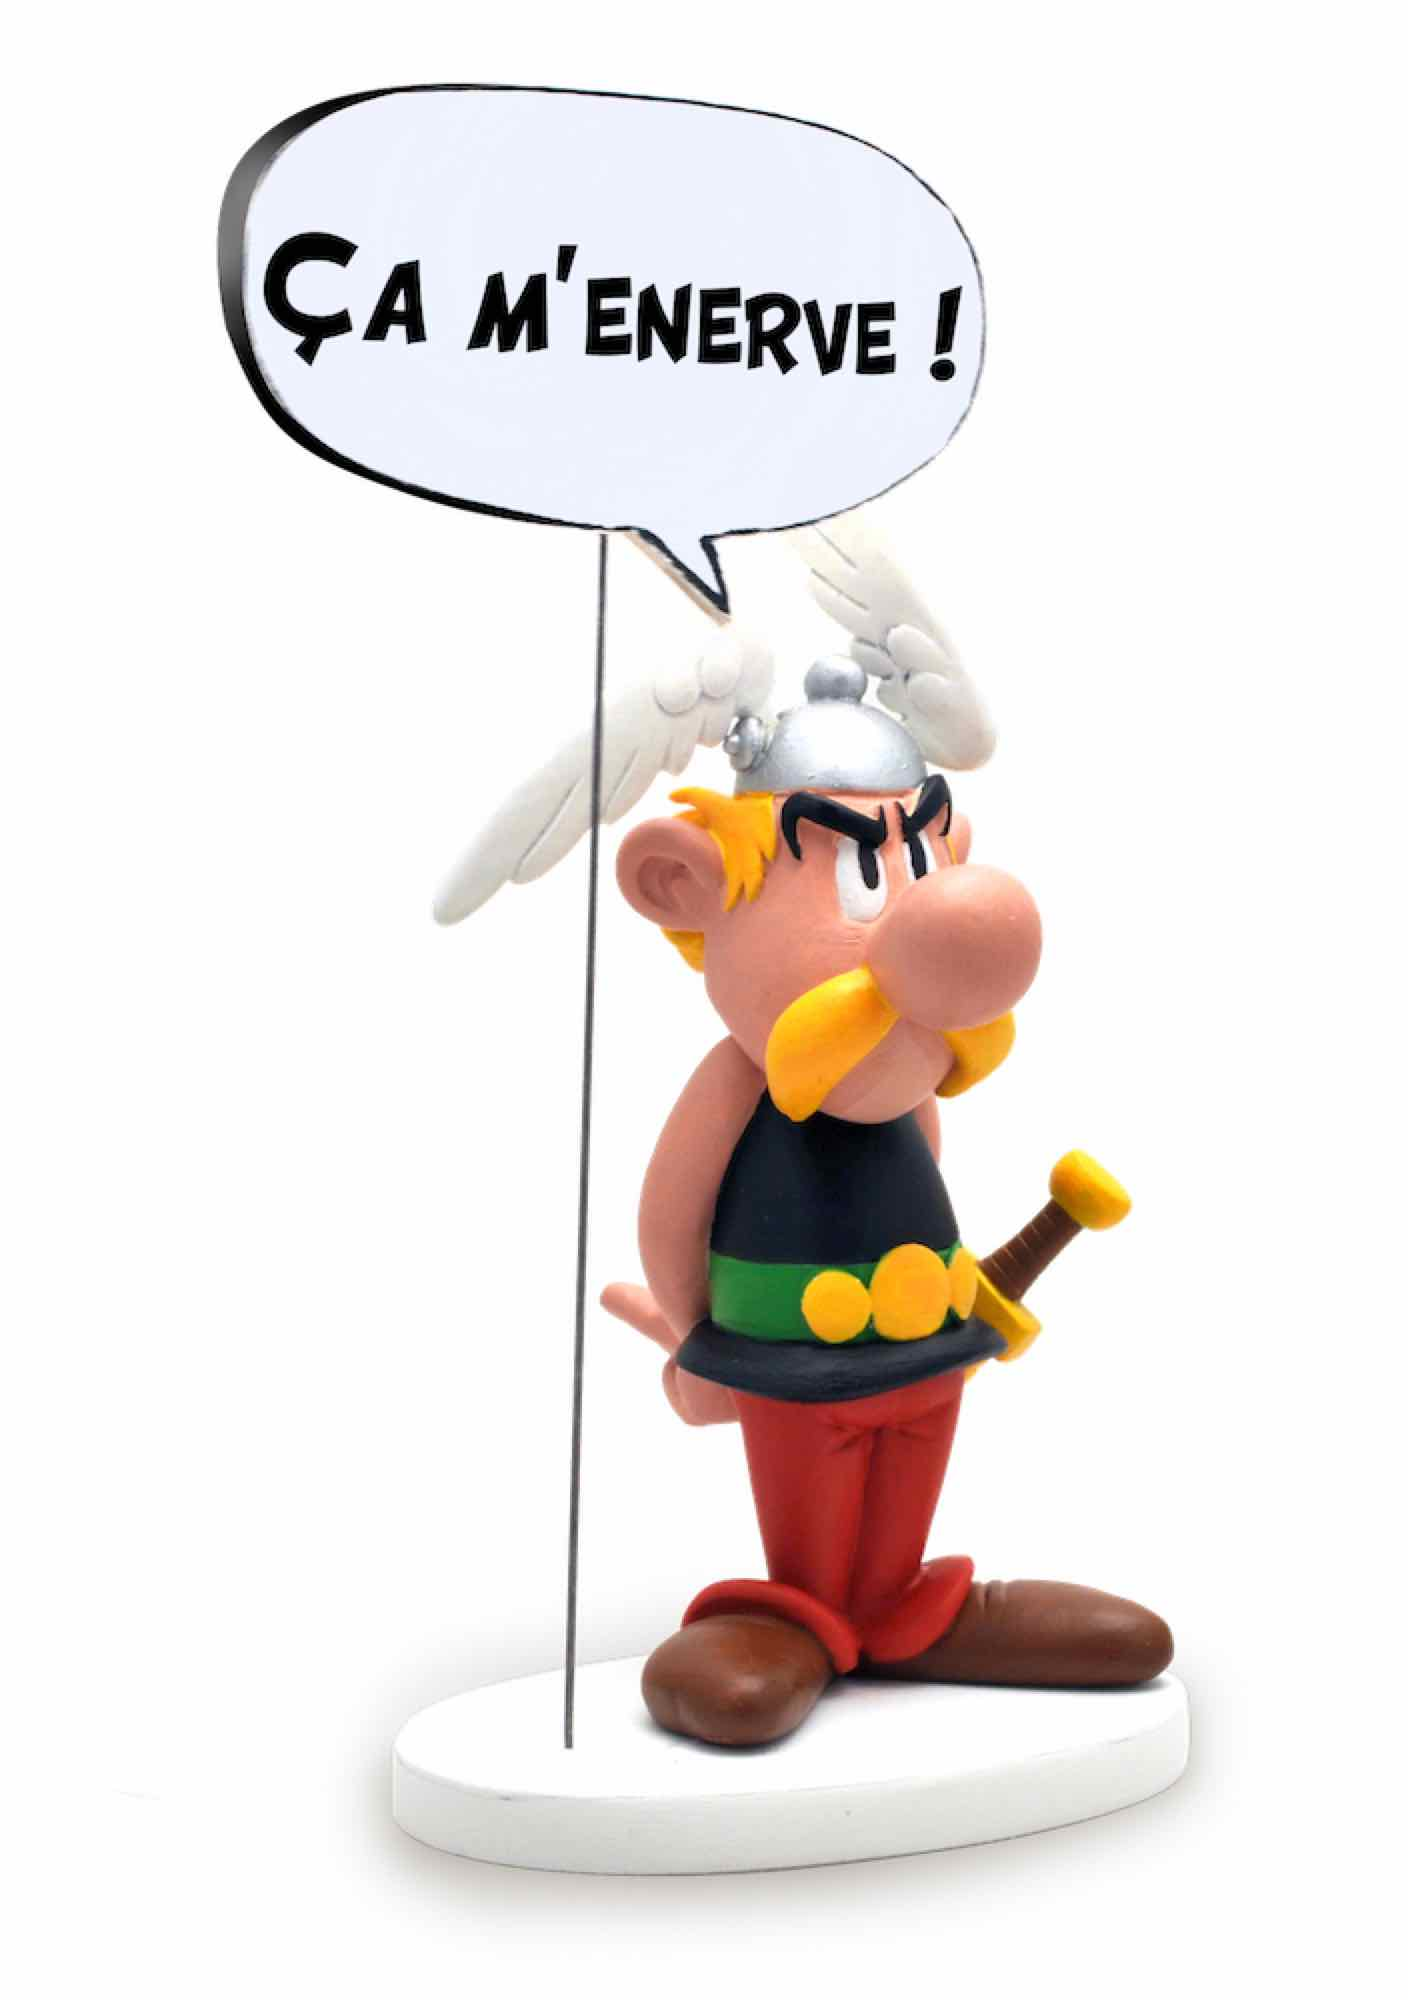 ASTERIX BOCADILLO 'ESO ME MOLESTA' FIGURA RESINA 15 CM ASTERIX COMIC SPEECH COLLECTION